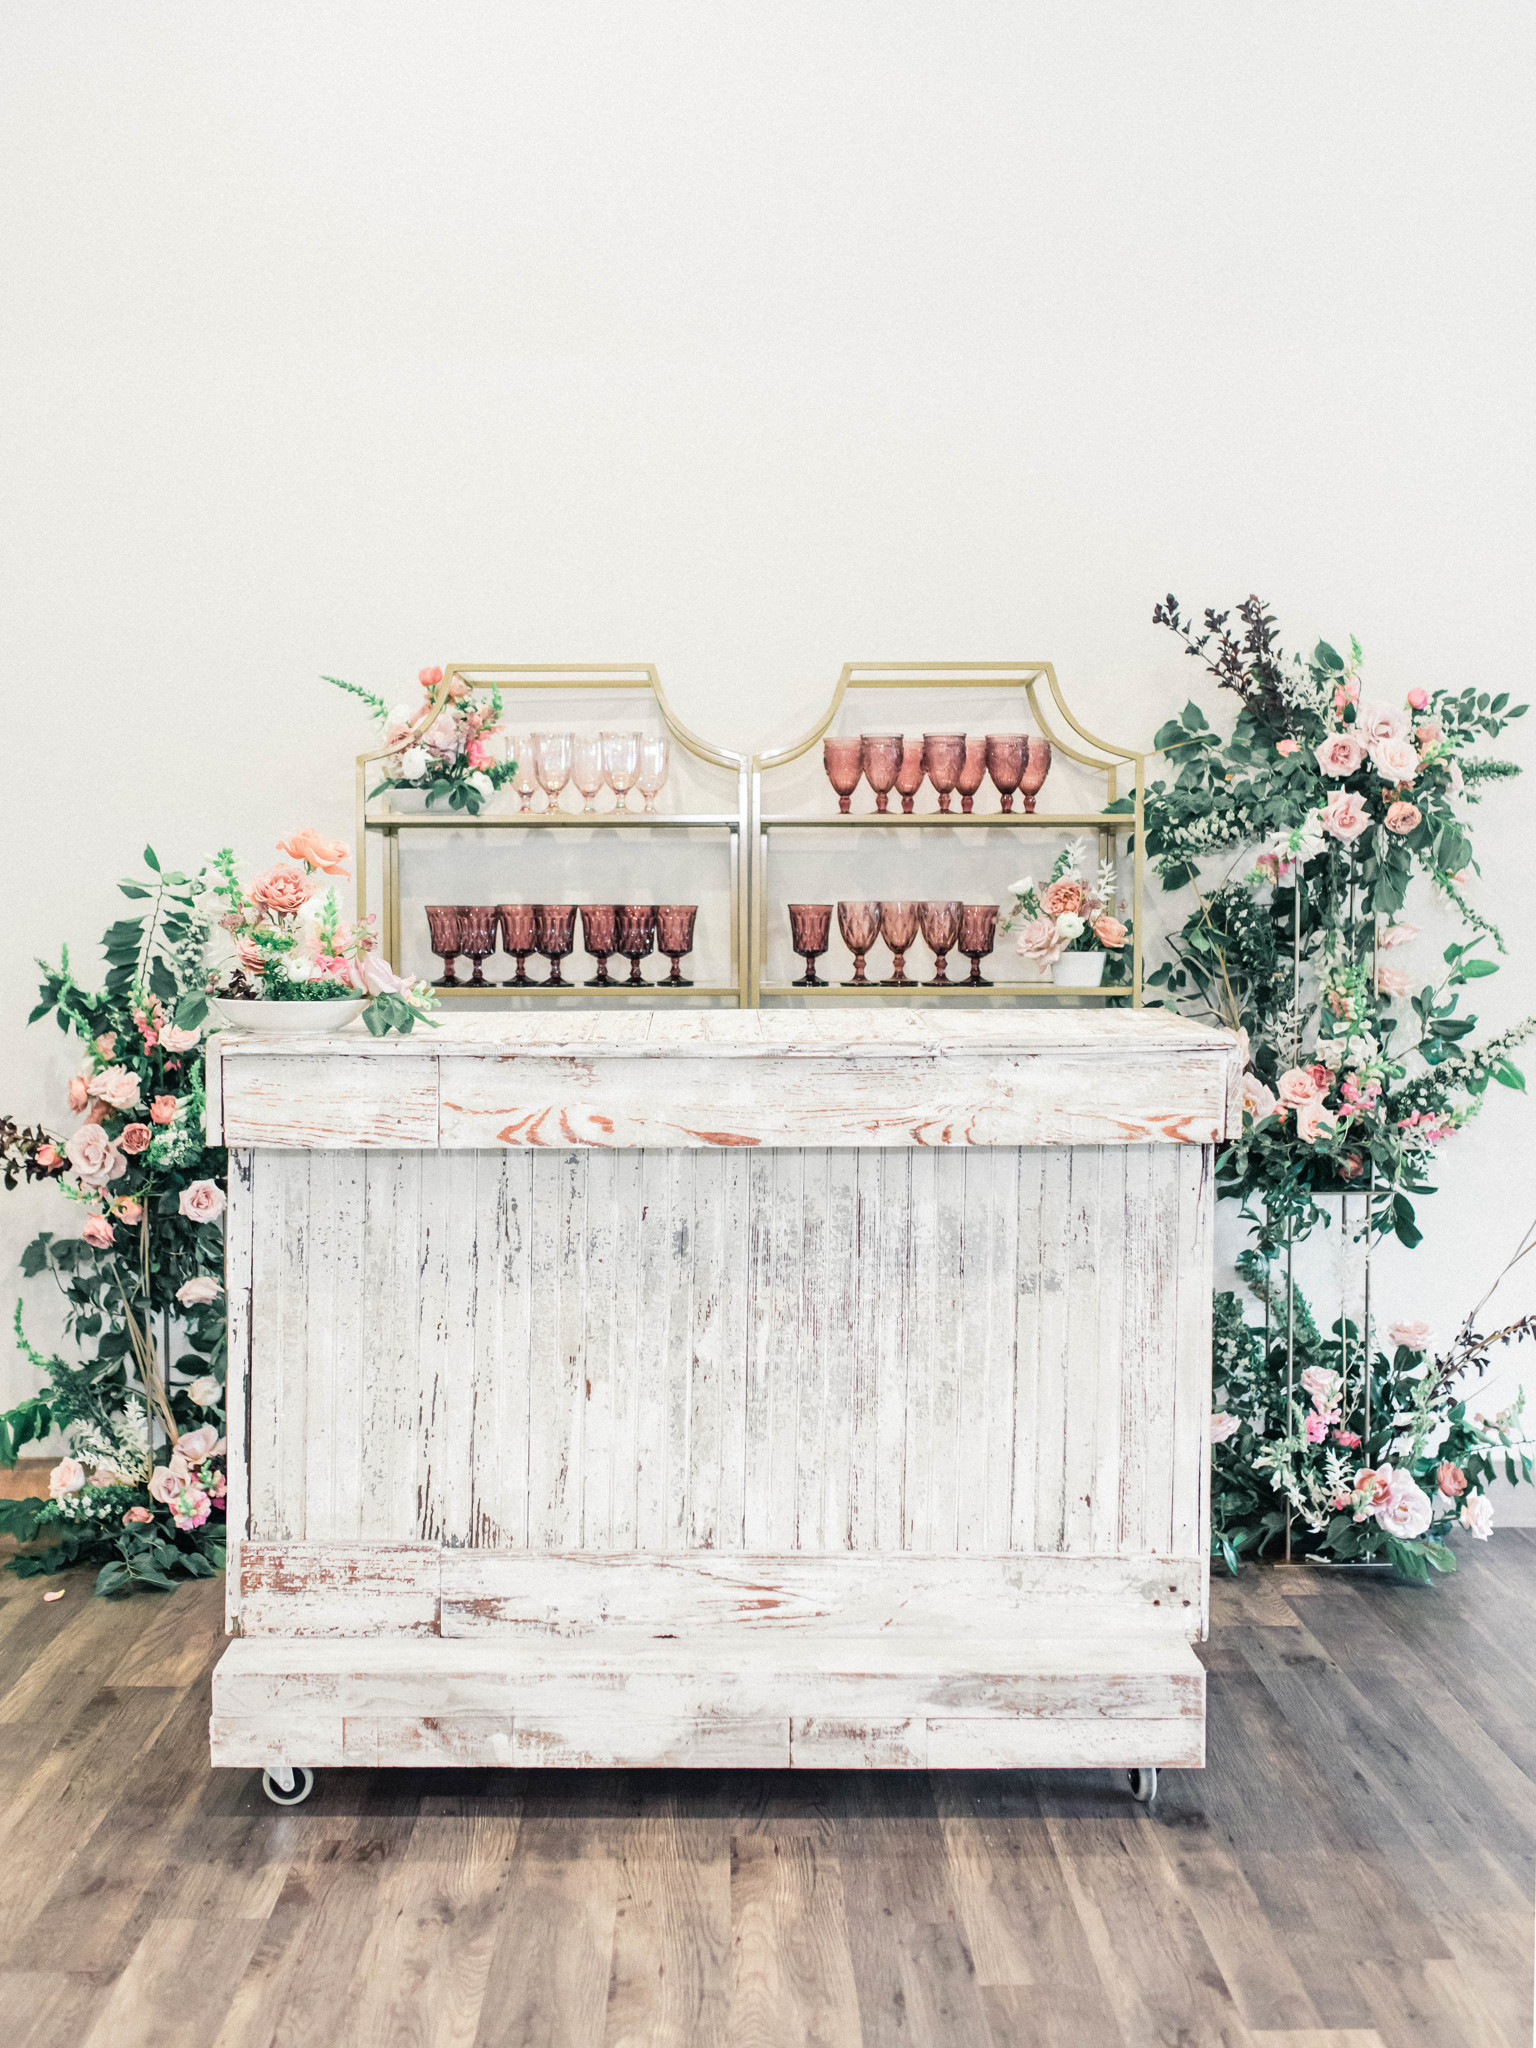 Wedding reception decor: Whimsical mauve wedding inspiration on Alexa Kay Events. See more romantic wedding ideas at alexakayevents.com!